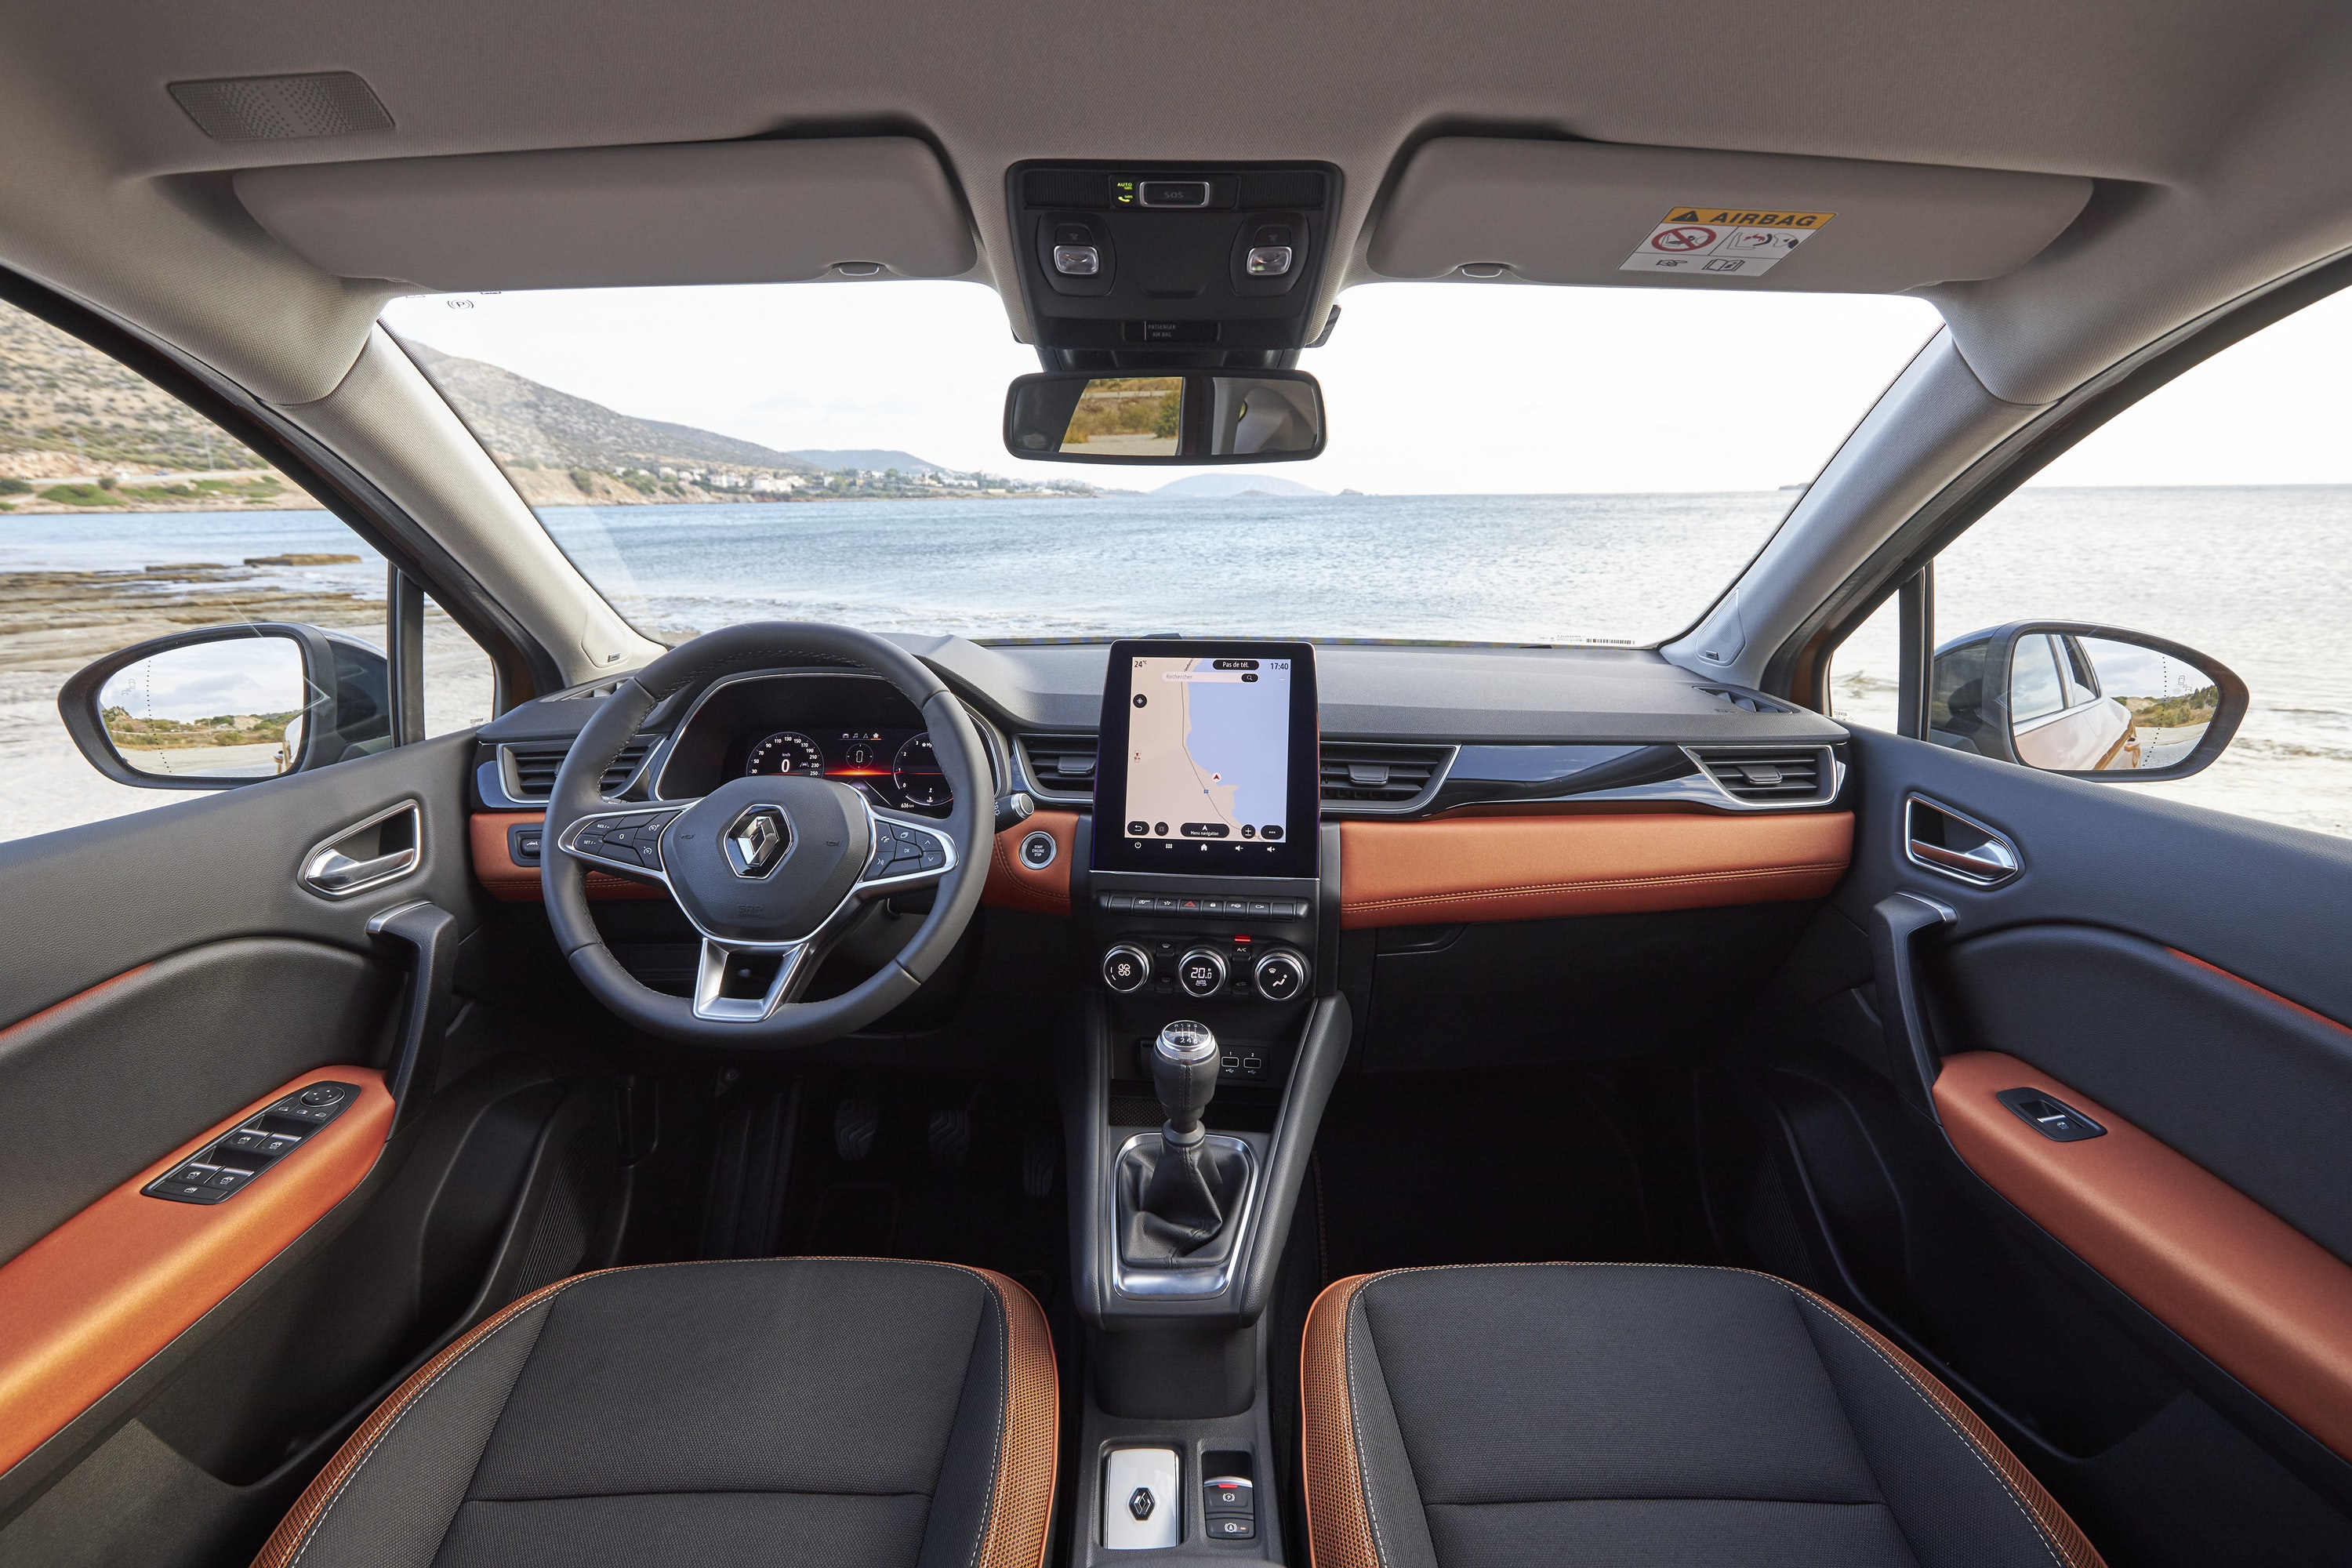 interior of Renault Captur